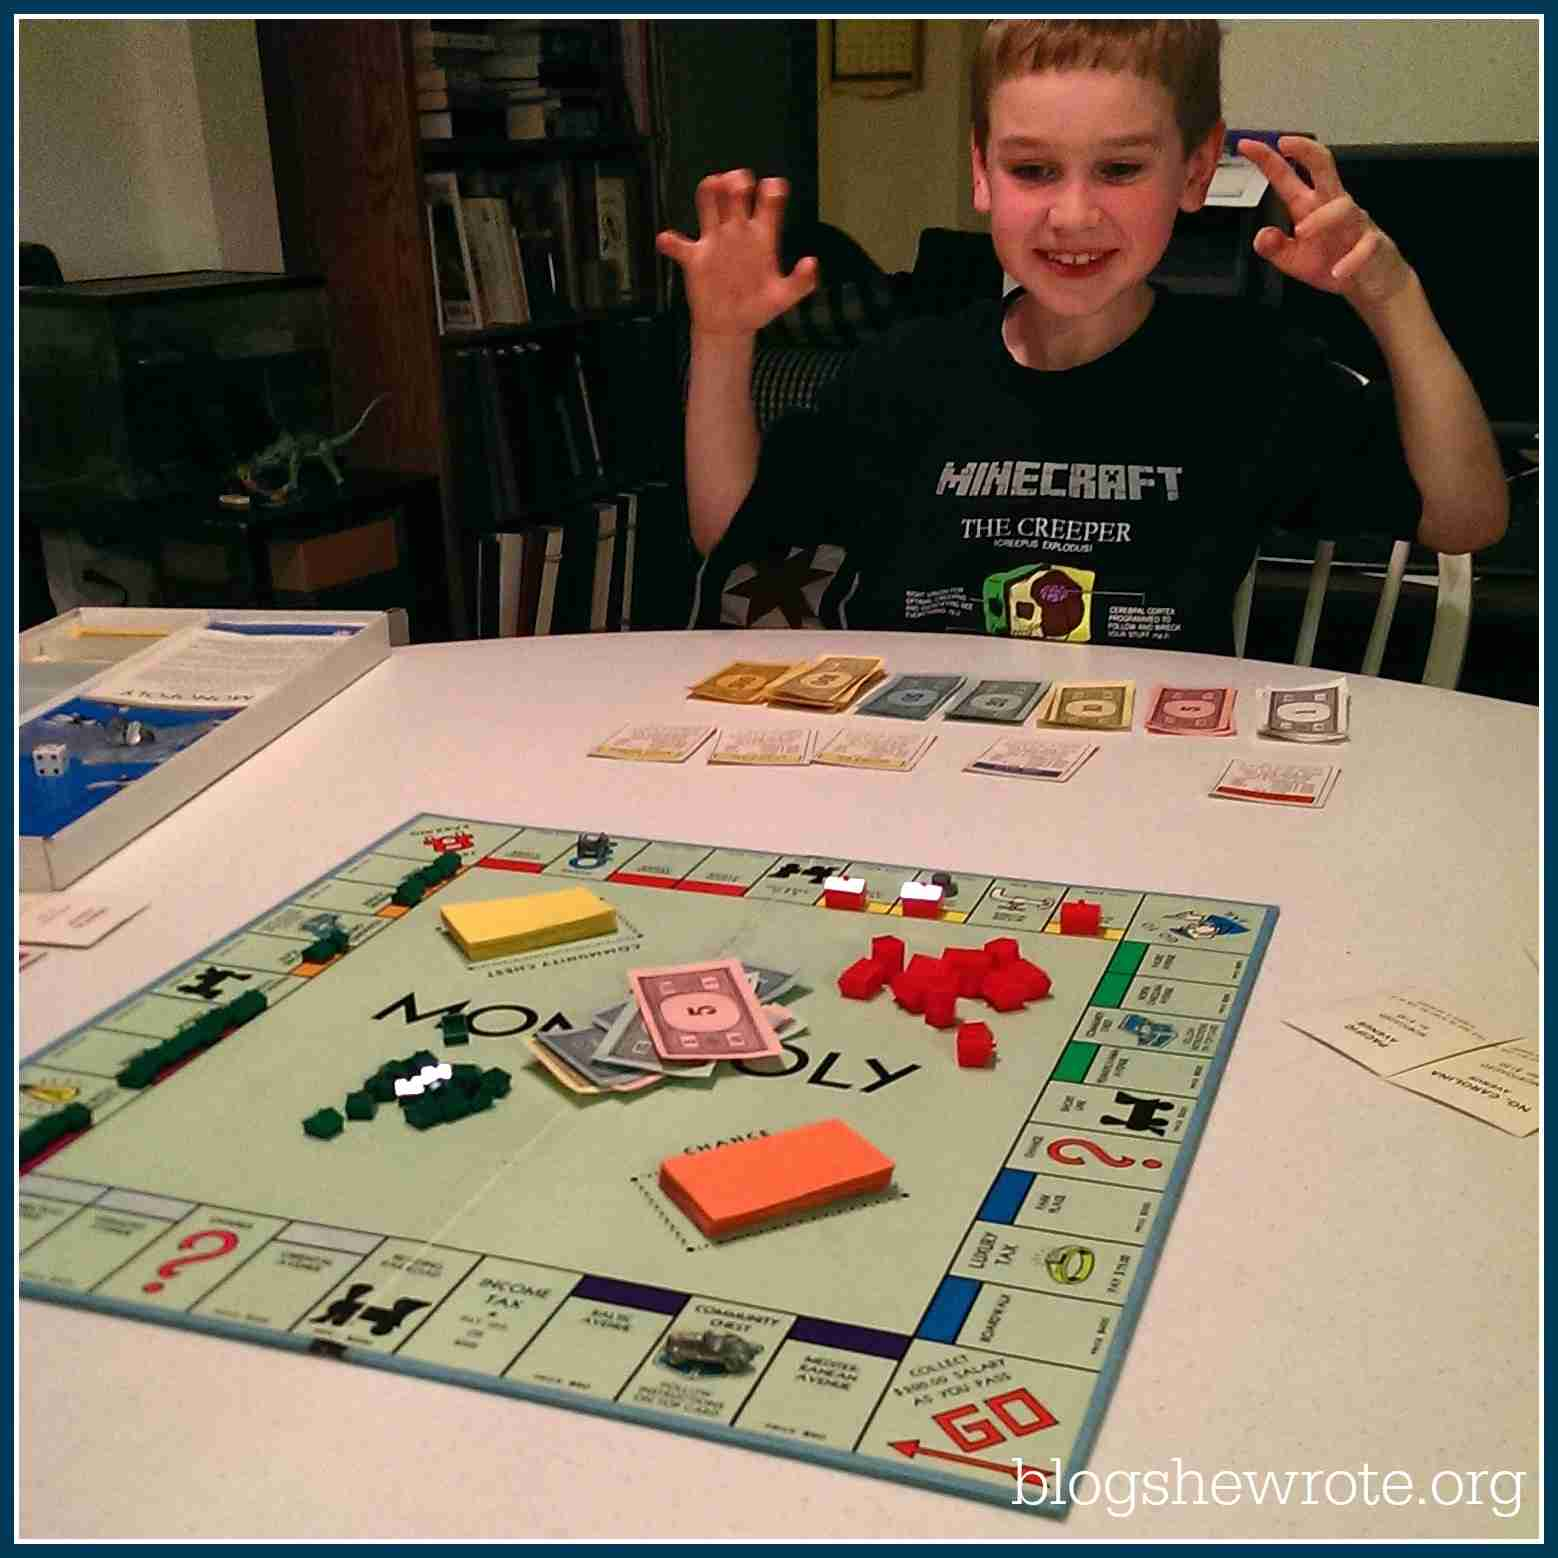 100 Family Games for Kids of All Ages - Blog, She Wrote